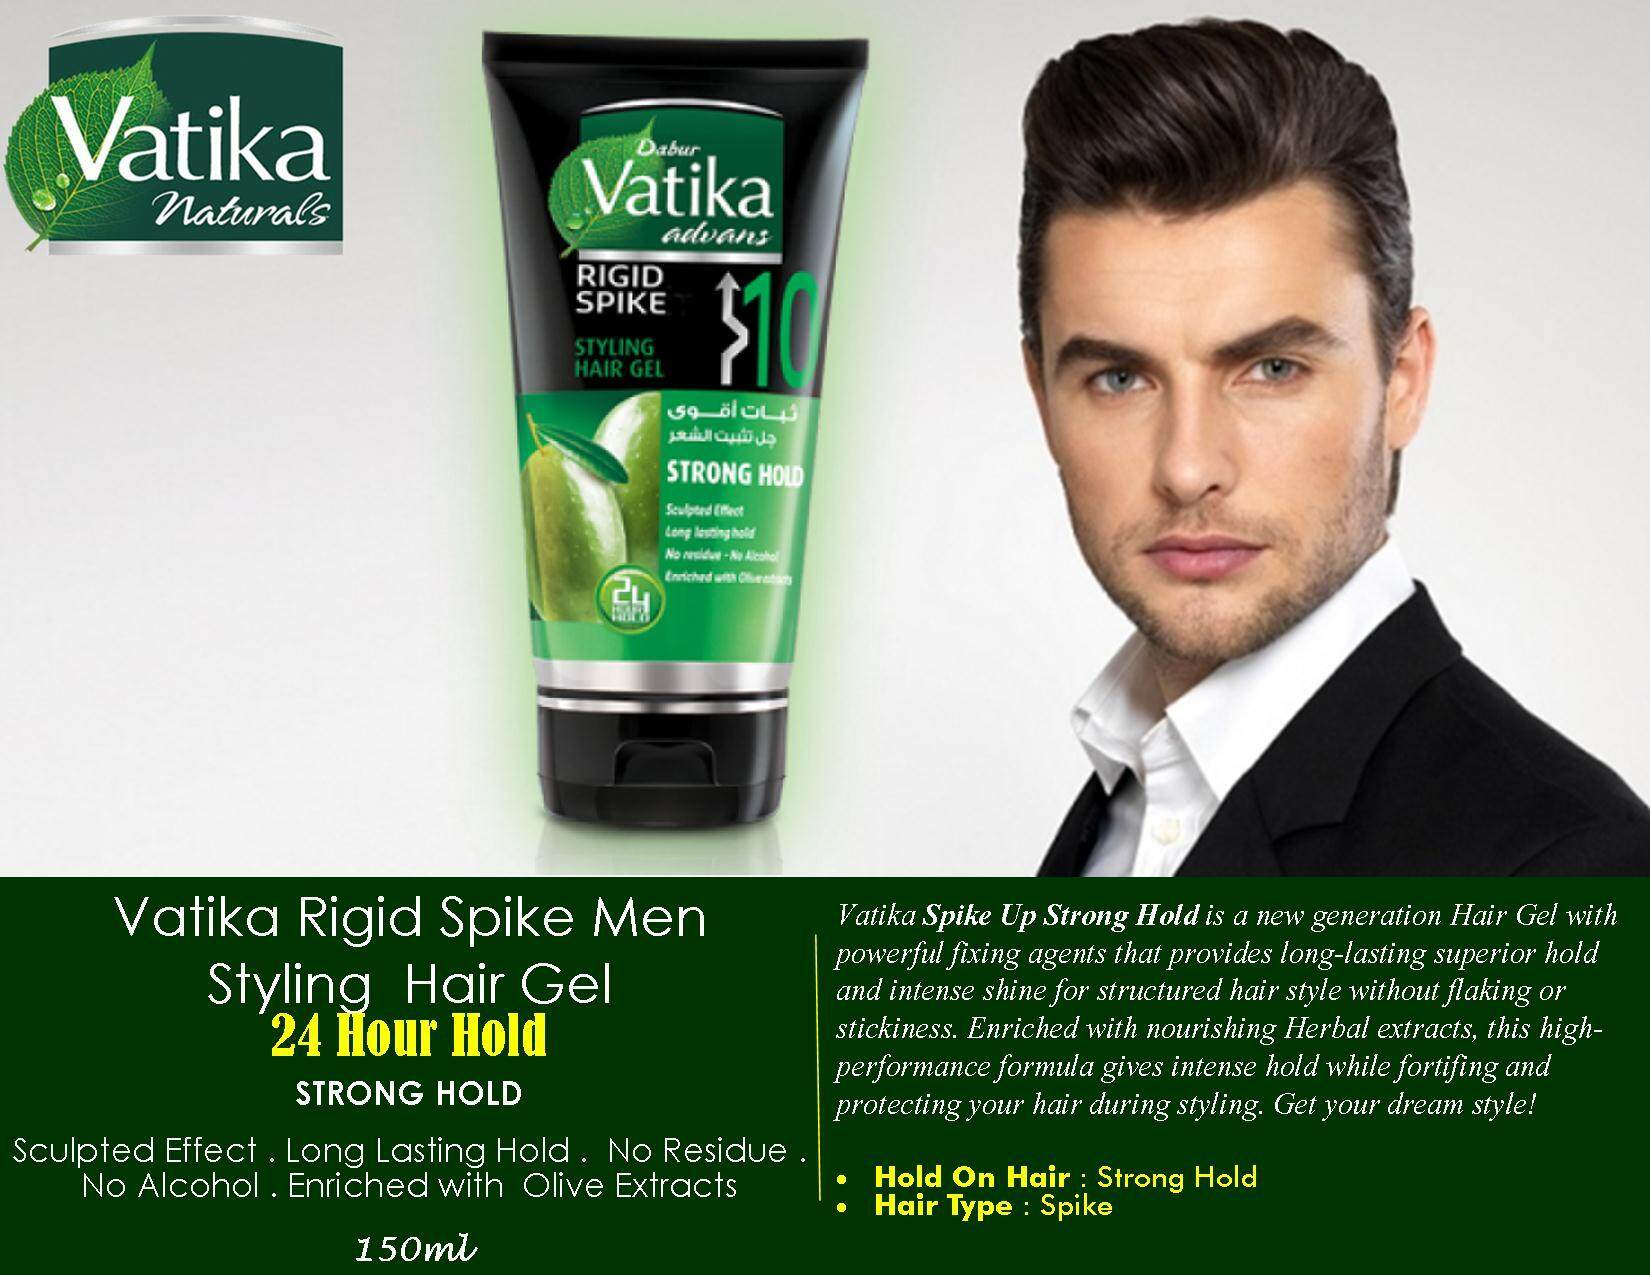 Vatika Rigid Spike Men Styling Hair Gel 24 Hour Hold Strong Hold 150ml By Raison- Raihan Maju Empire.